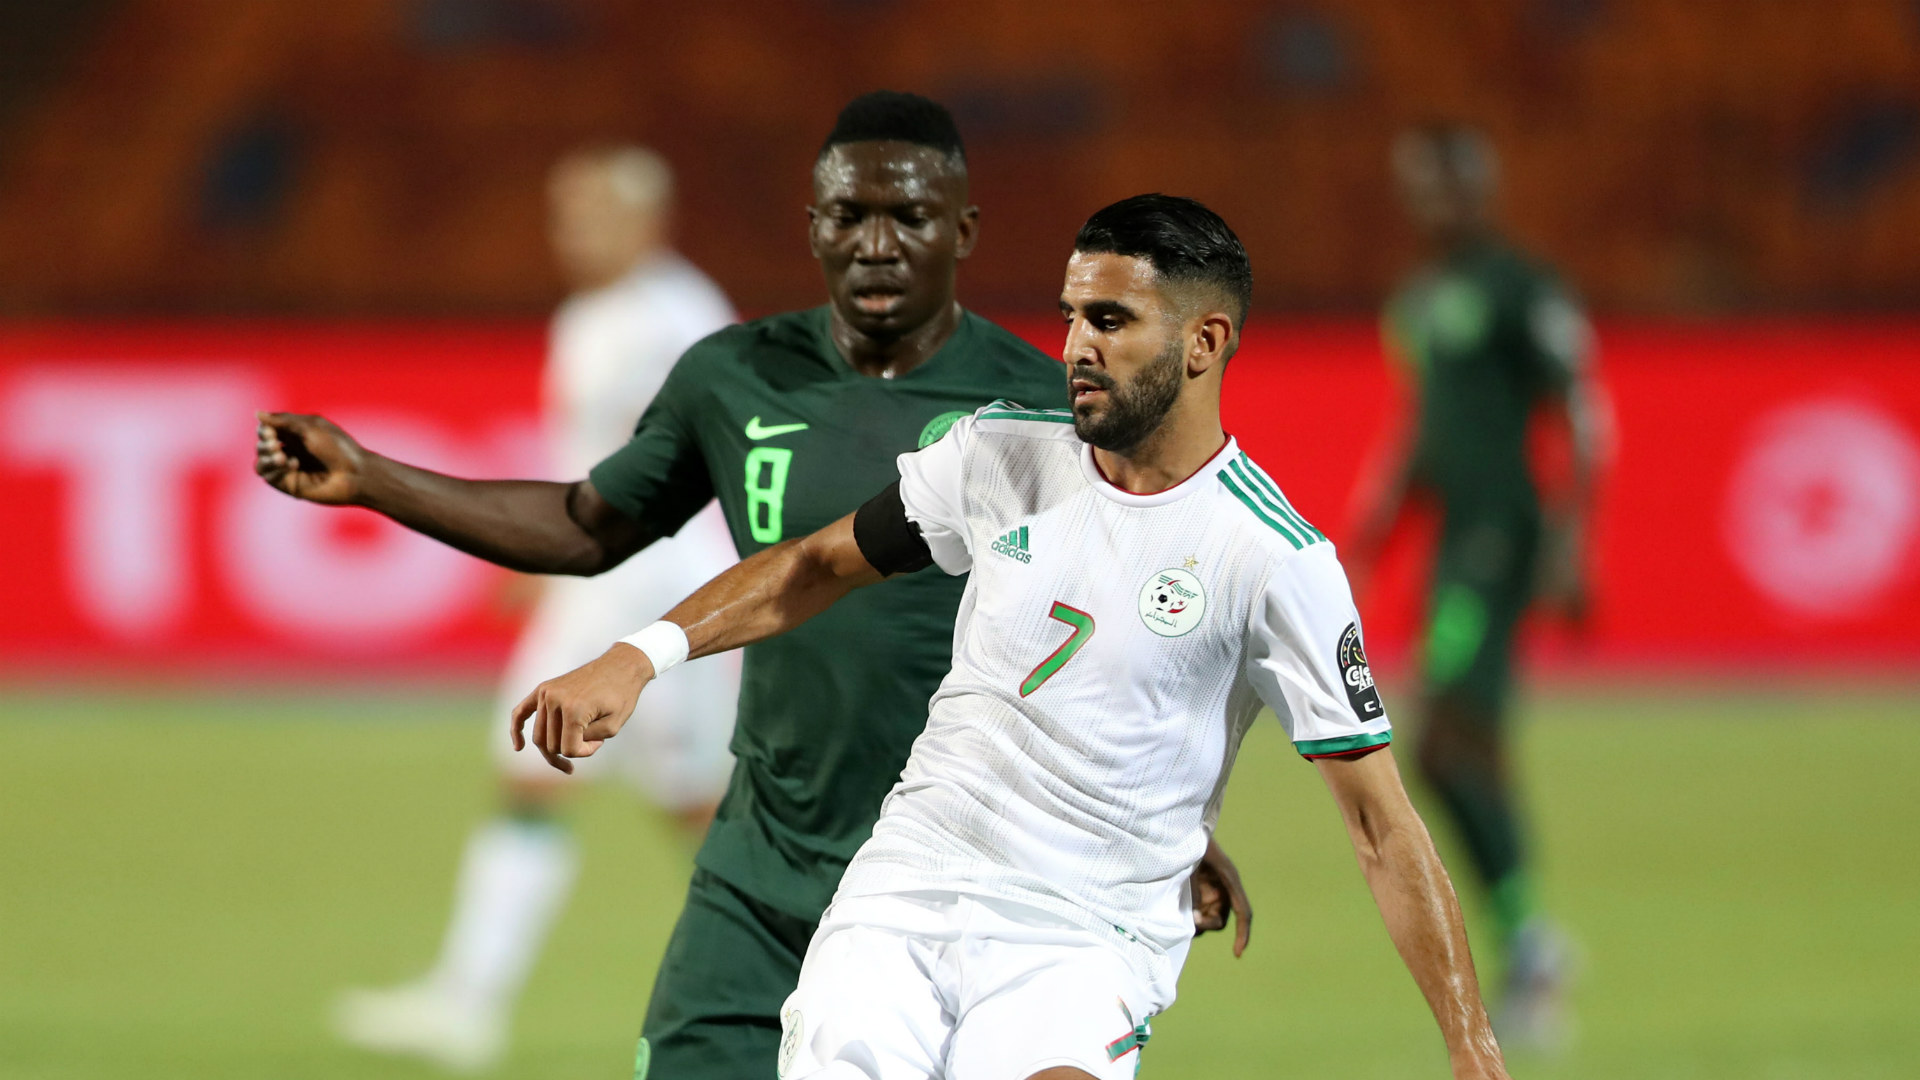 Afcon 2019: What did we learn from Nigeria's 2-1 defeat to Algeria?